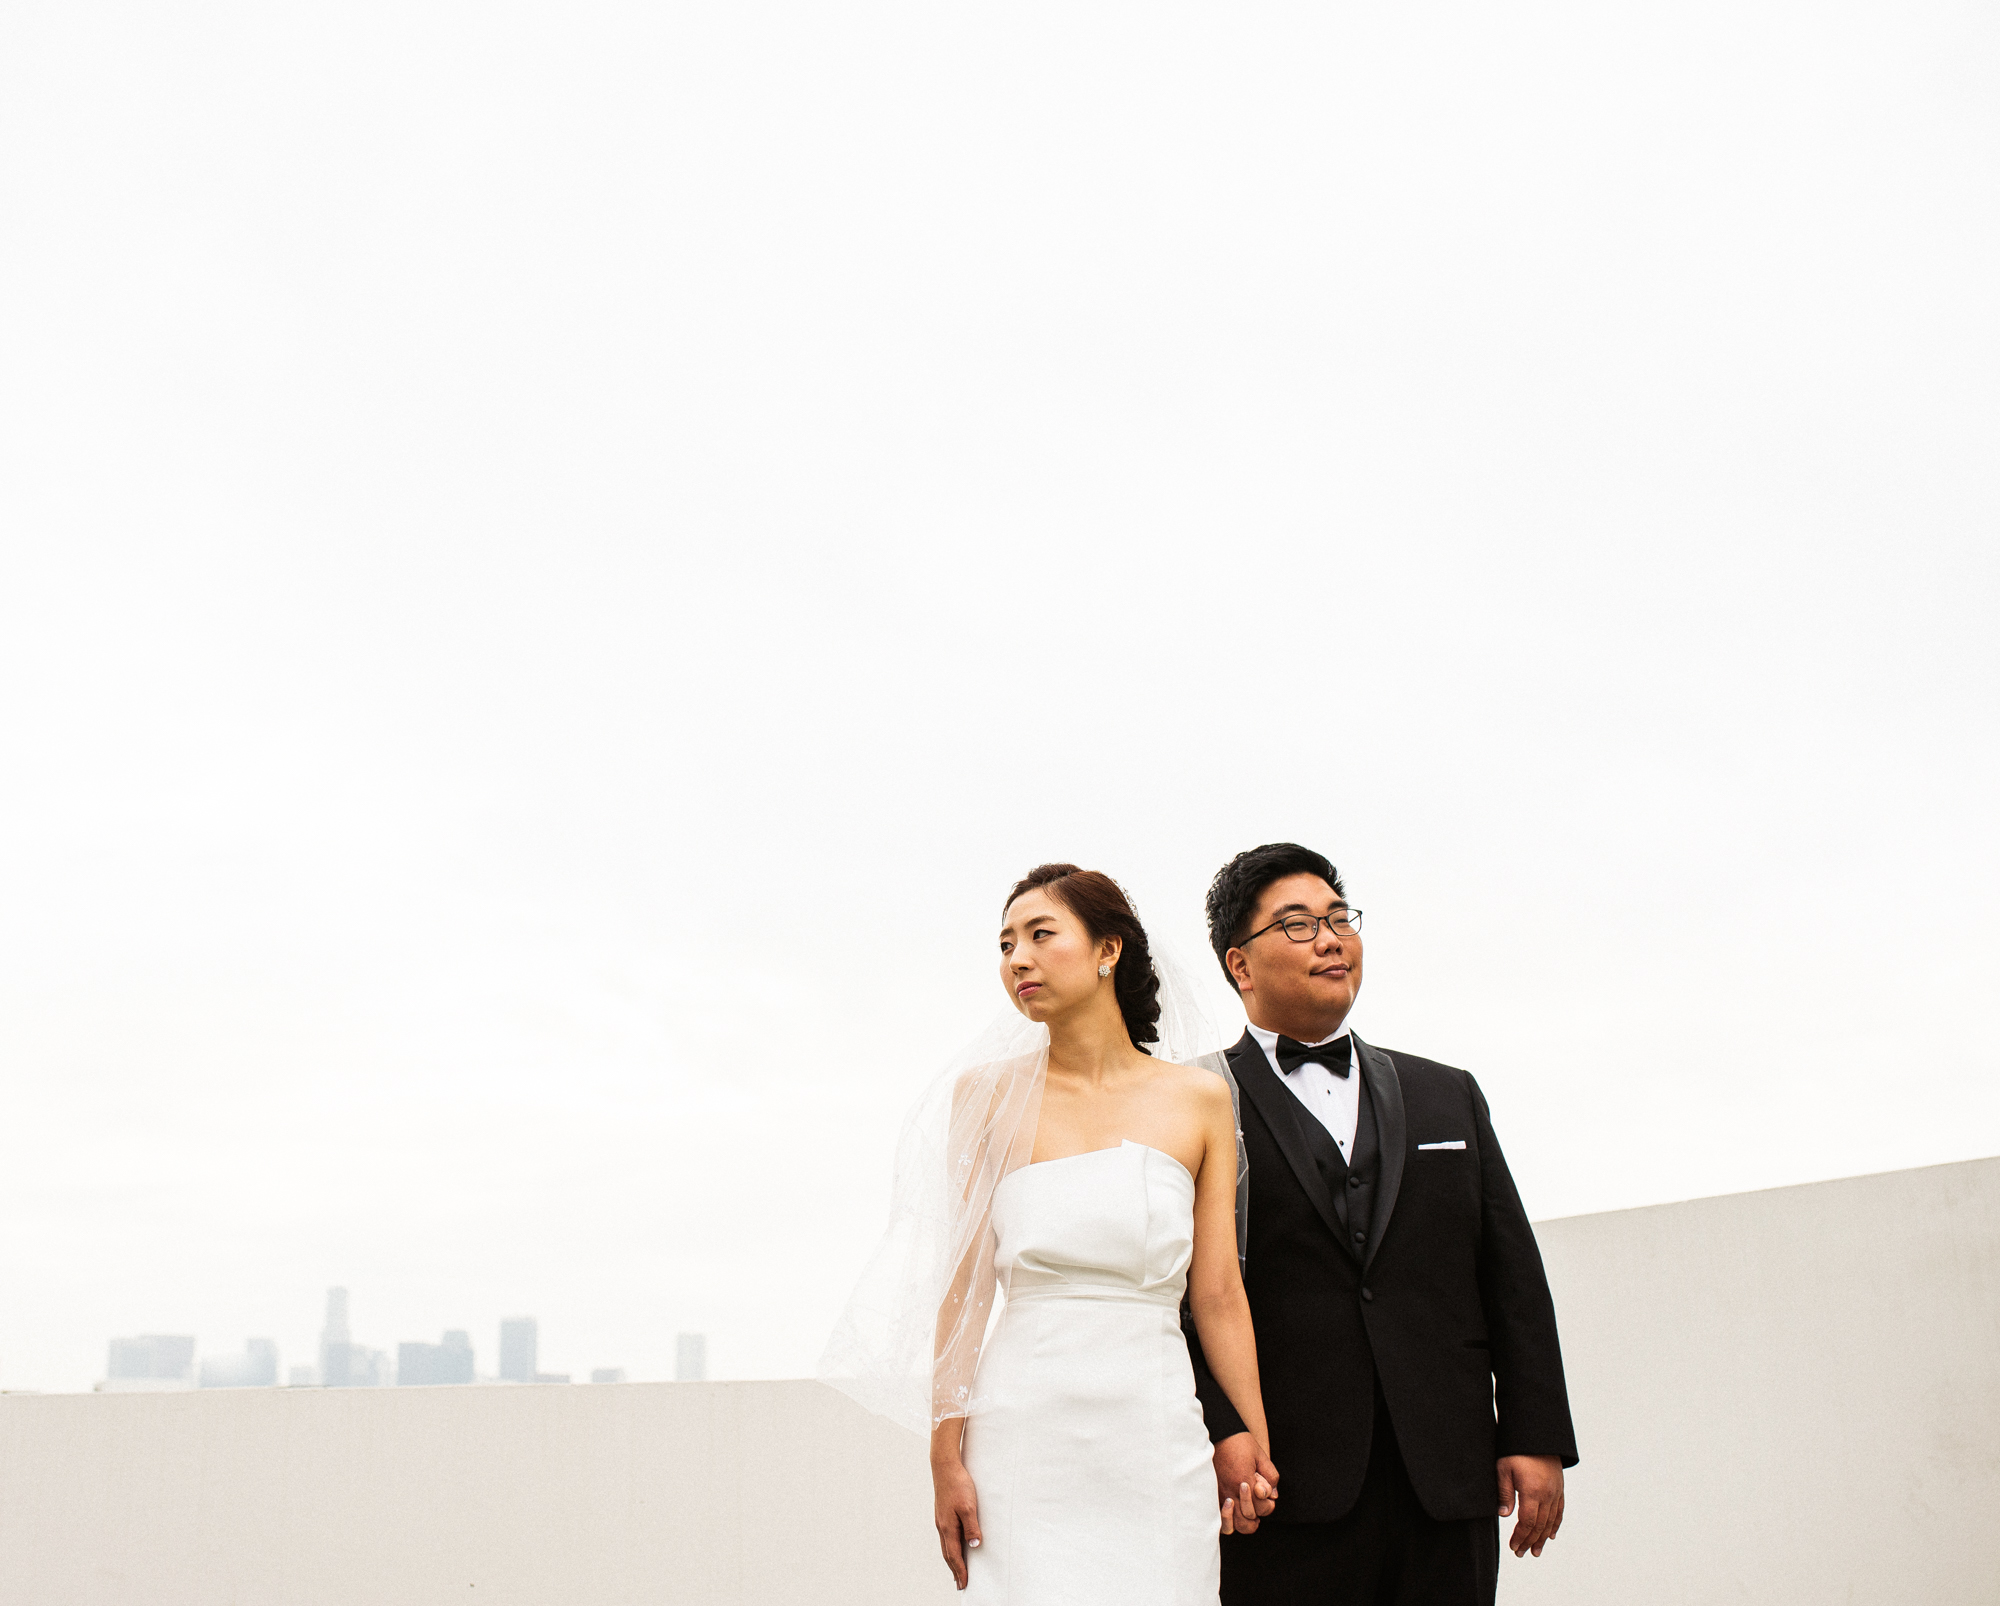 ©Isaiah & Taylor Photography - Destination Wedding Photographers - Downtown Los Angeles Parking Lot Rooftop Wedding-015.jpg